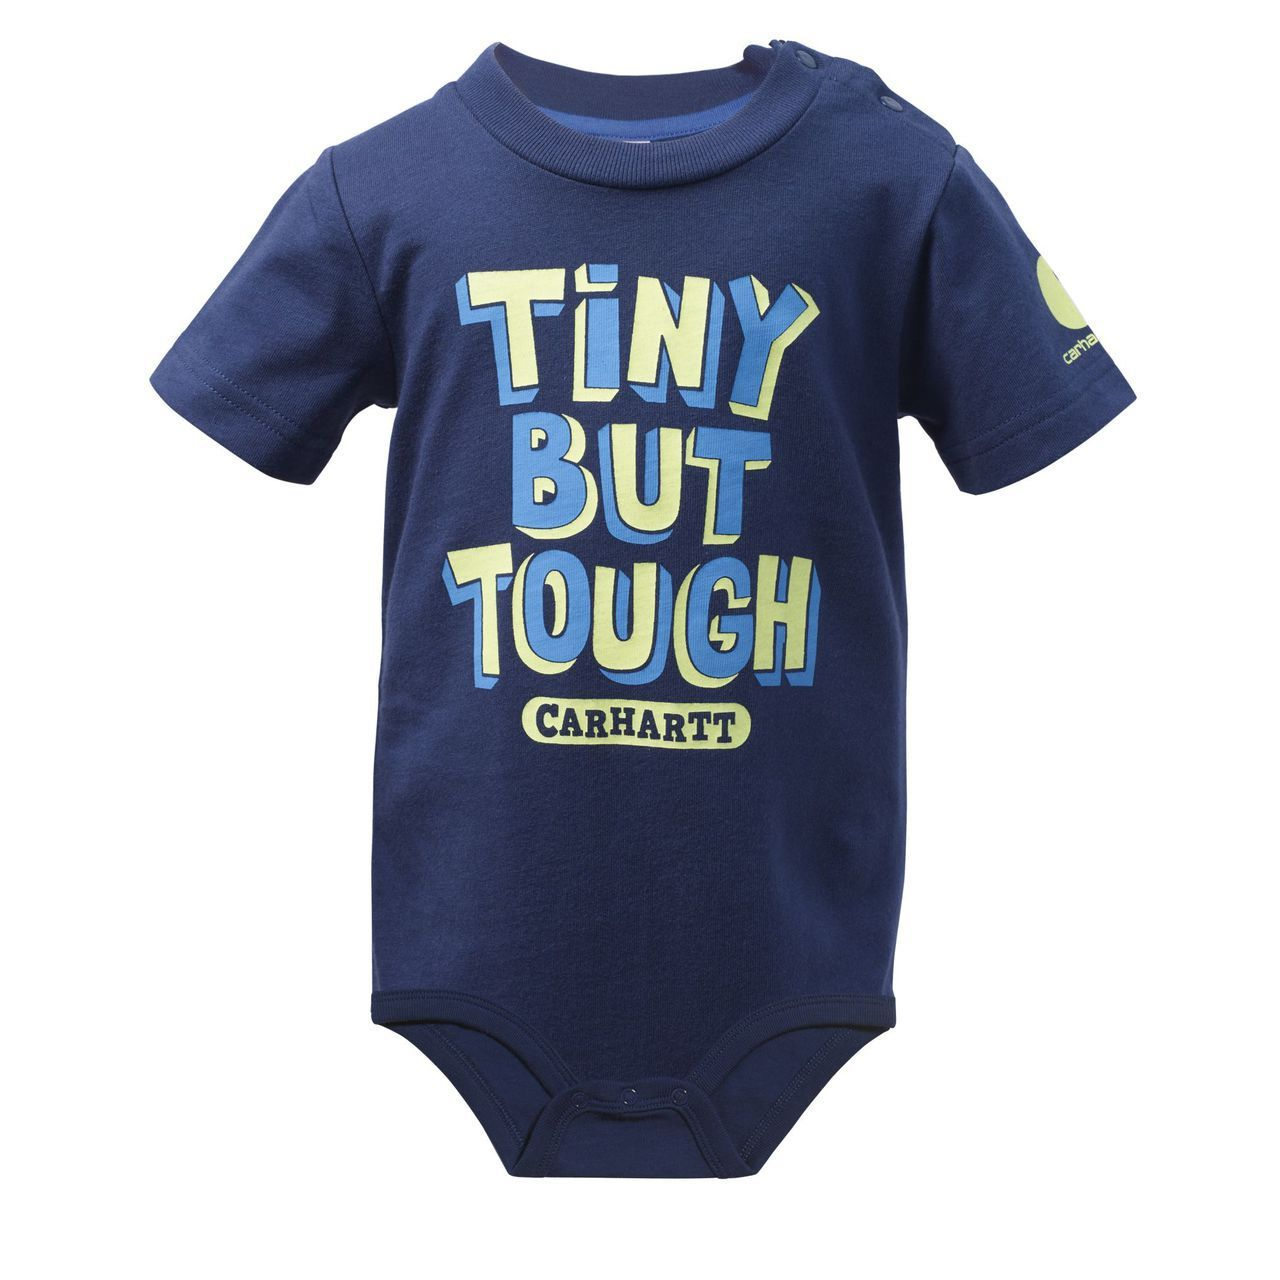 TINY BUT TOUGH BODY SUIT - The Brown Duck